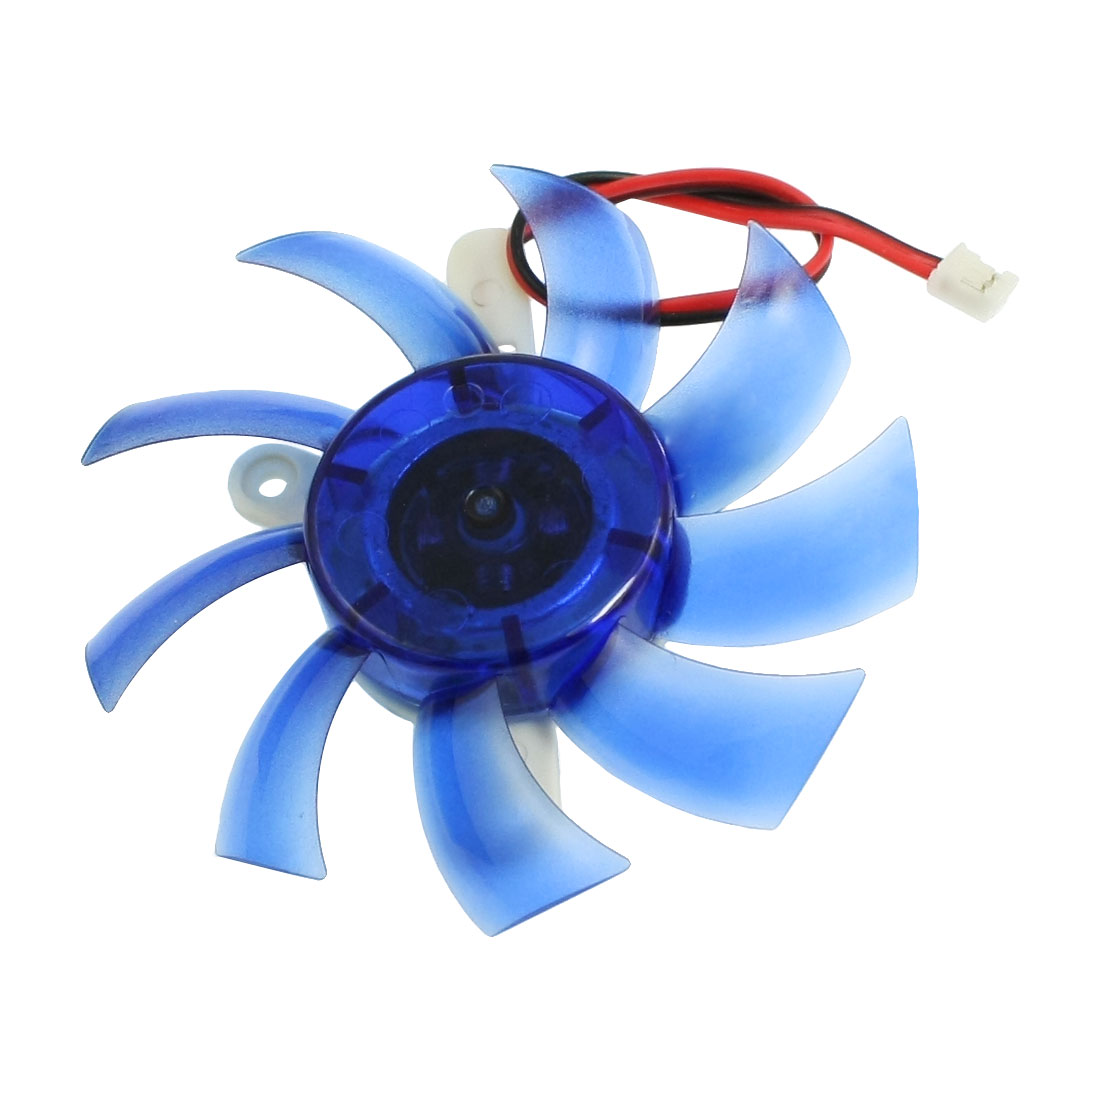 "5.9"" Cable DC 12V Desktop Computer 2 Terminals VGA Video Card Cooling Fan"